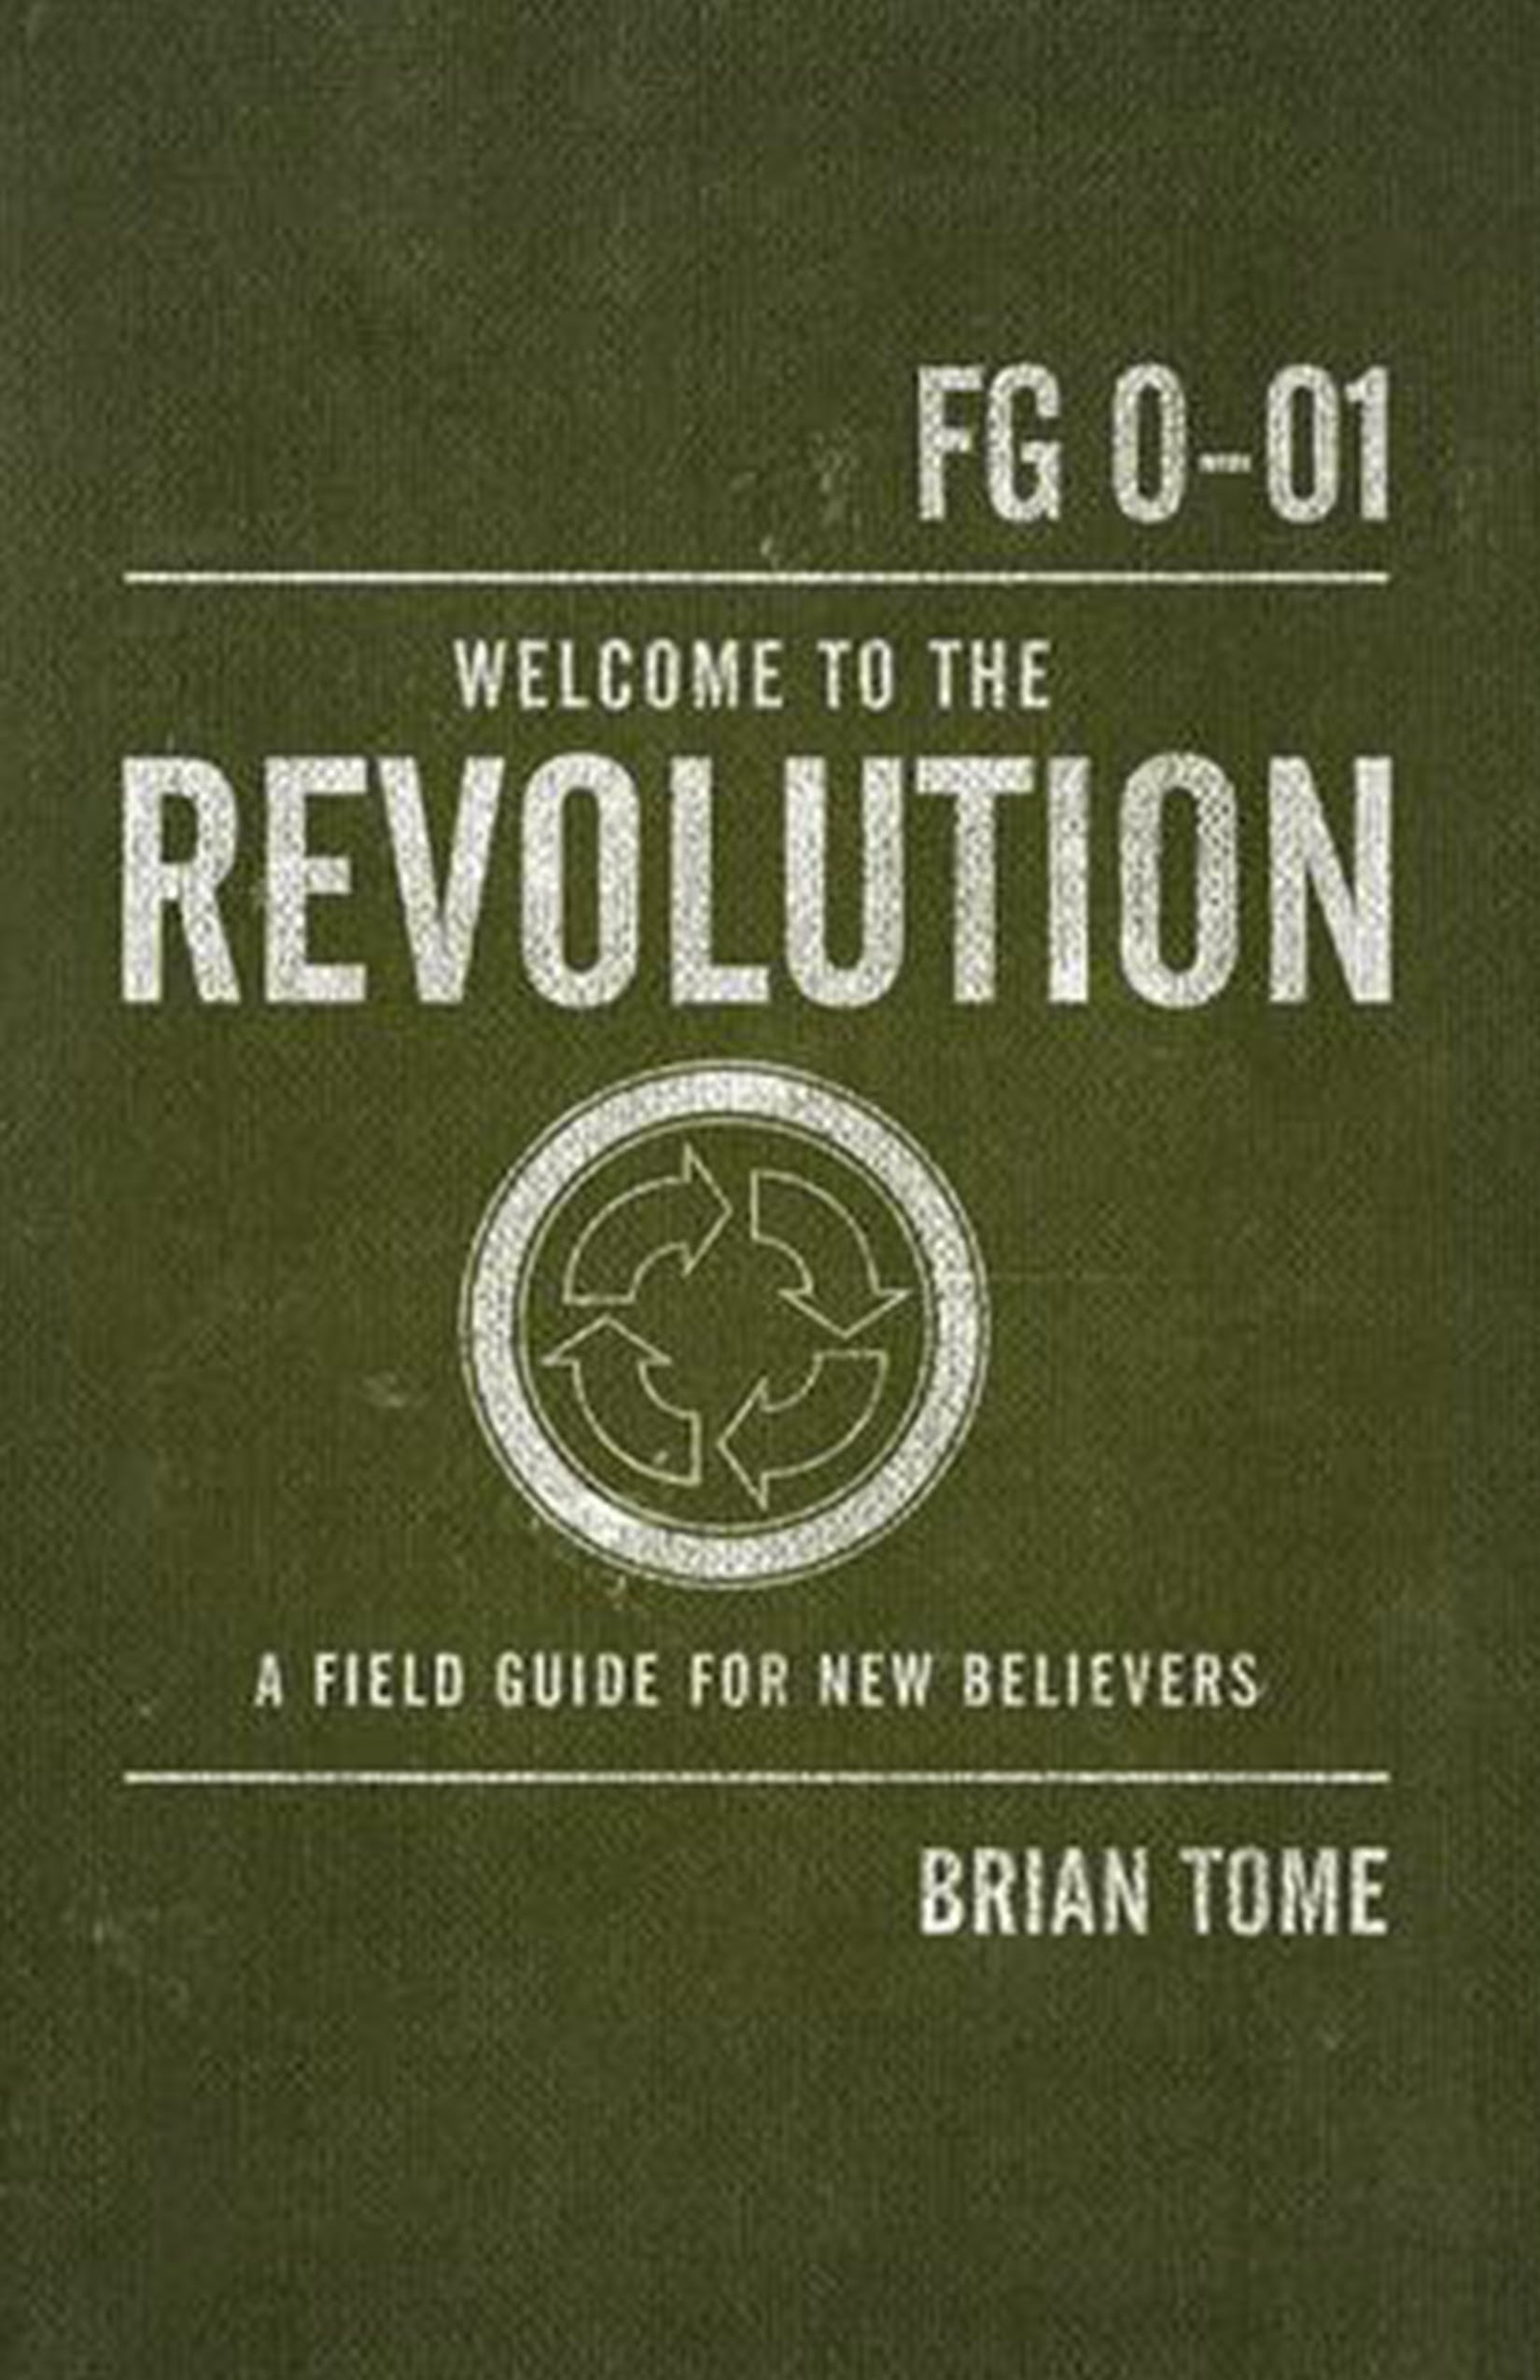 Brian Tome welcome to the revolution book